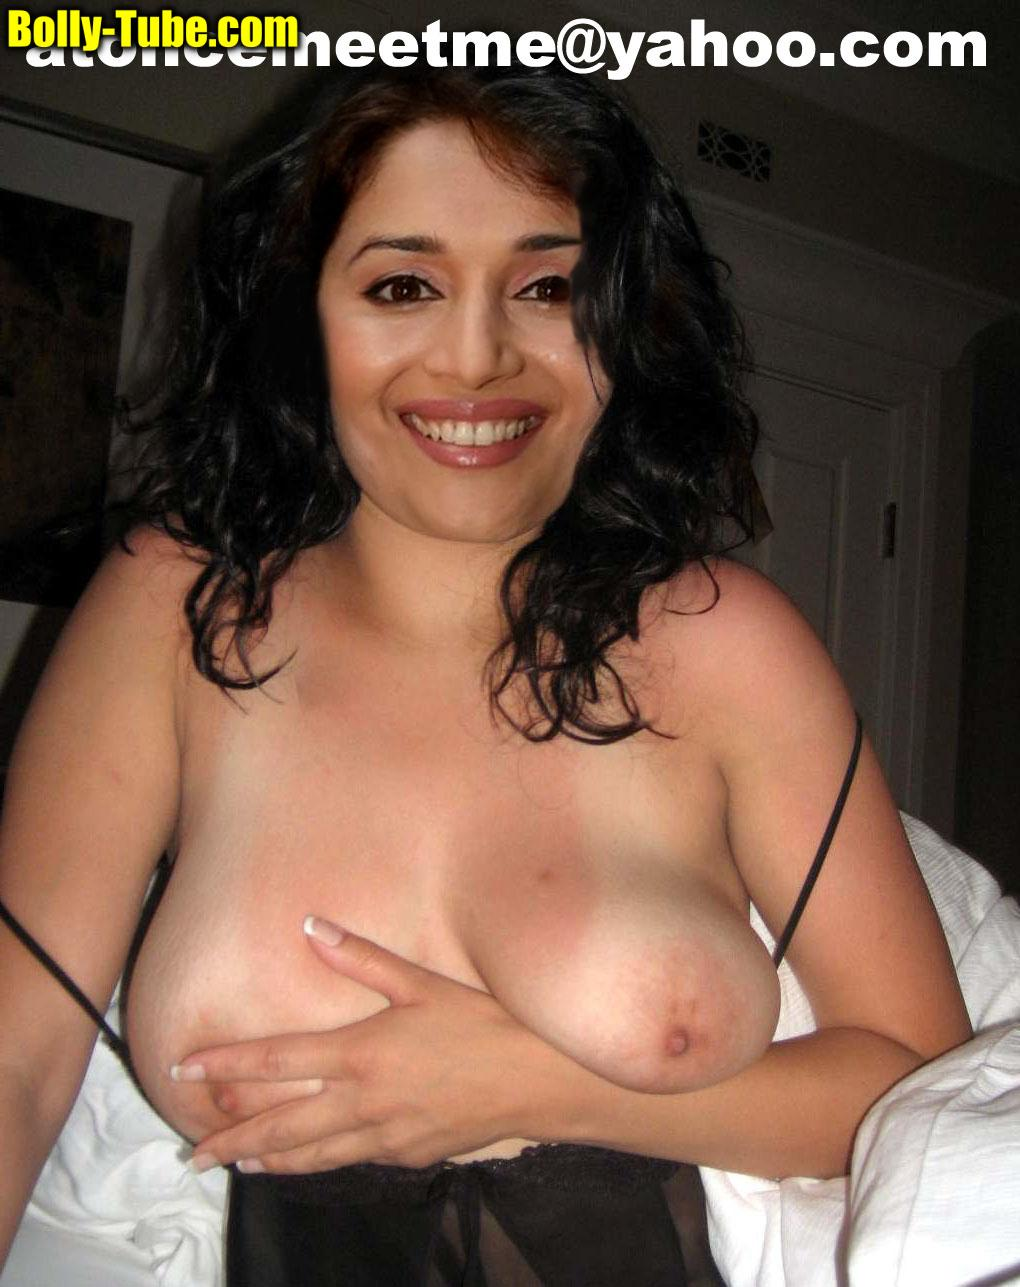 madhuri dixit showing big boobs